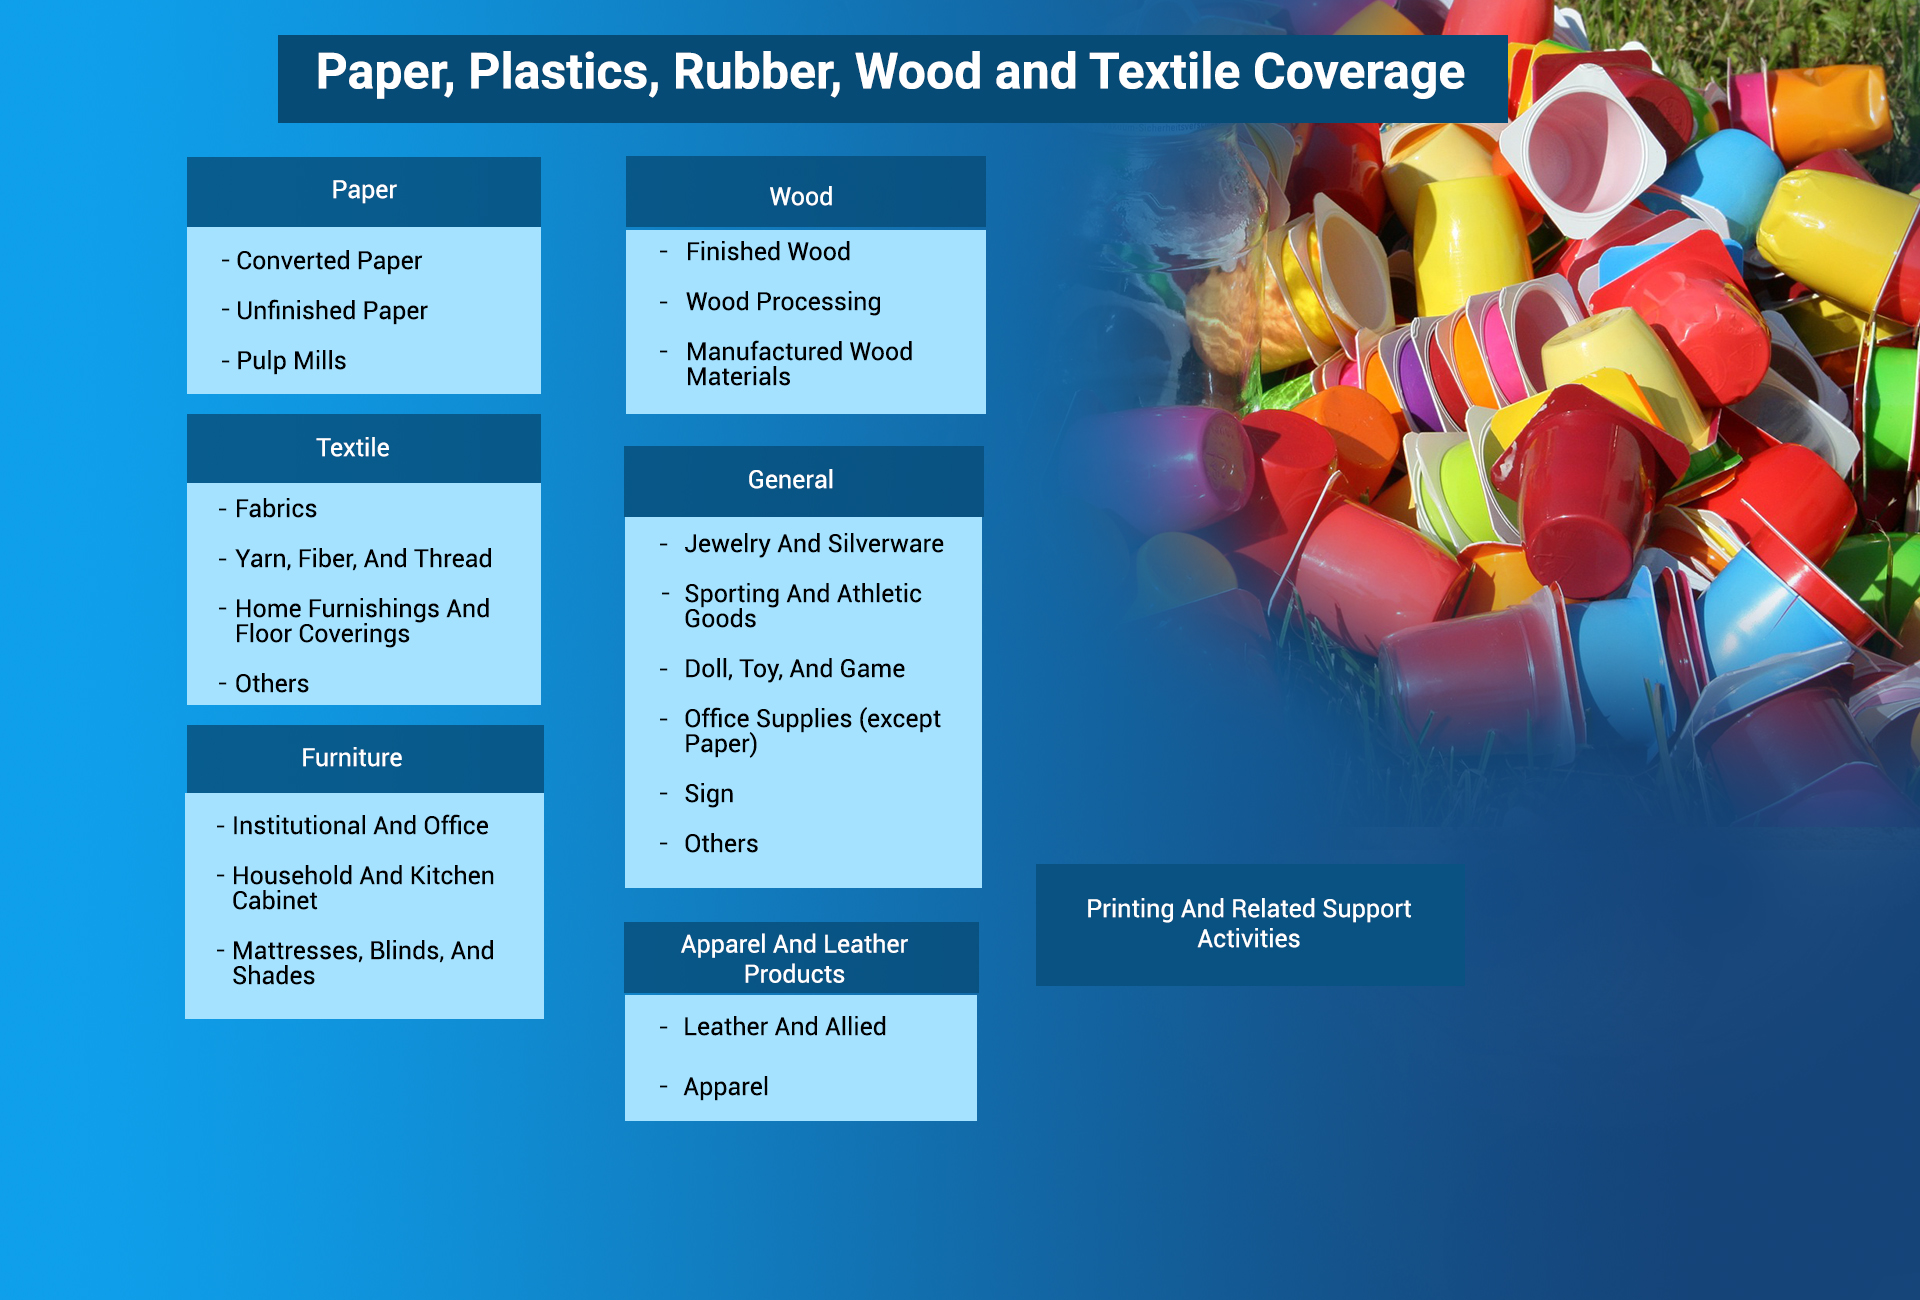 Paper, Plastics, Rubber, Wood and Textile Coverage